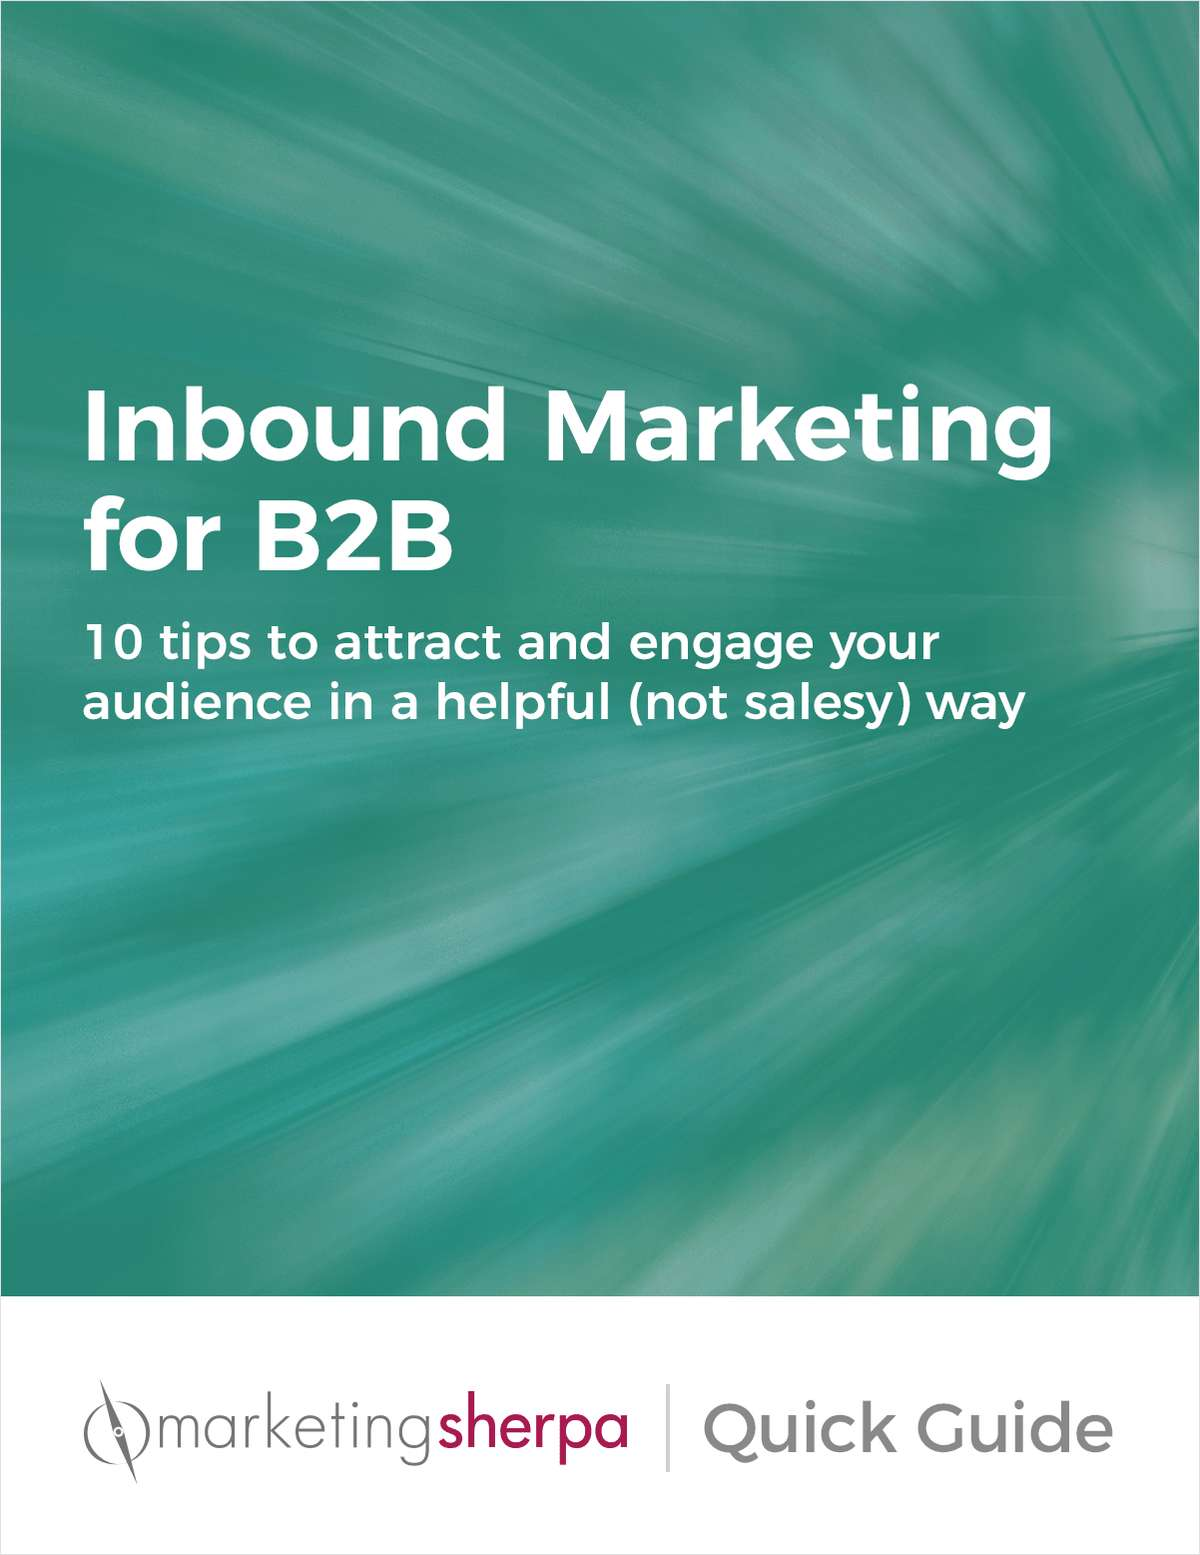 Quick Guide to Inbound Marketing for B2B